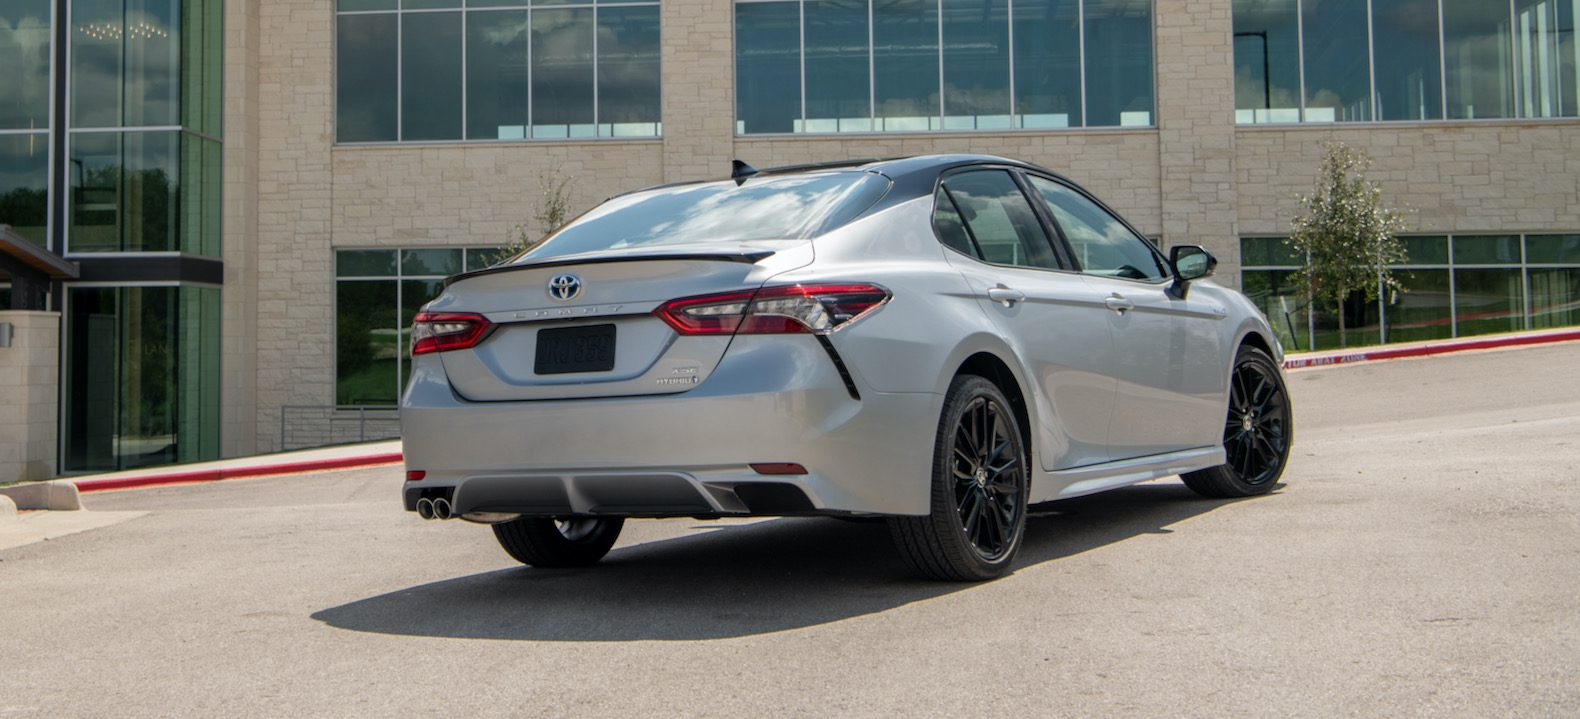 2021 Toyota Camry Hybrid Review